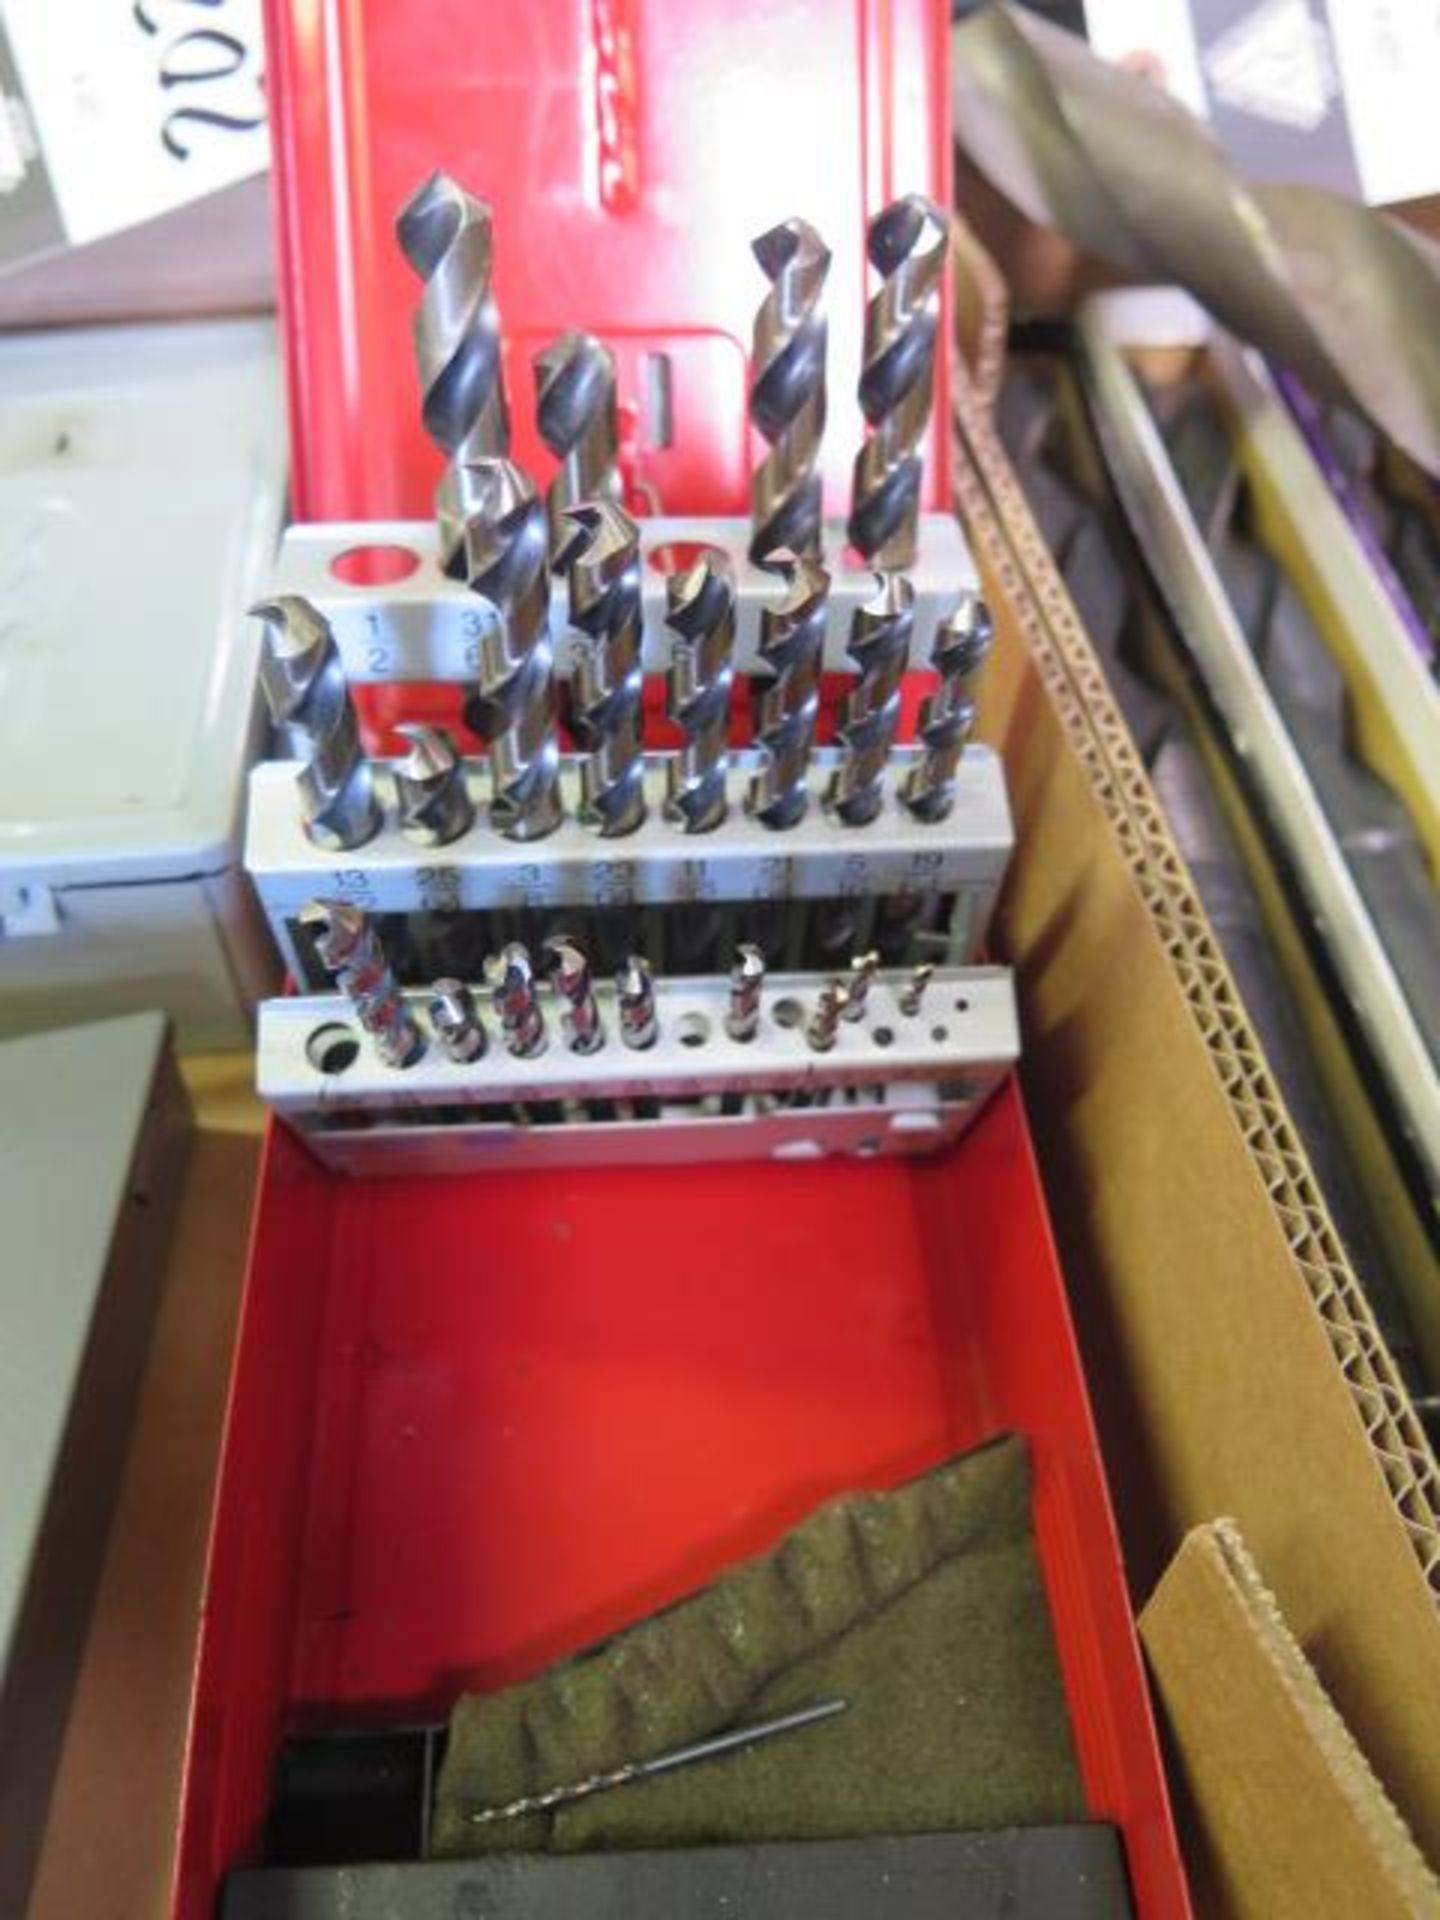 Lot 202 - Drill Indexes (SOLD AS-IS - NO WARRANTY)